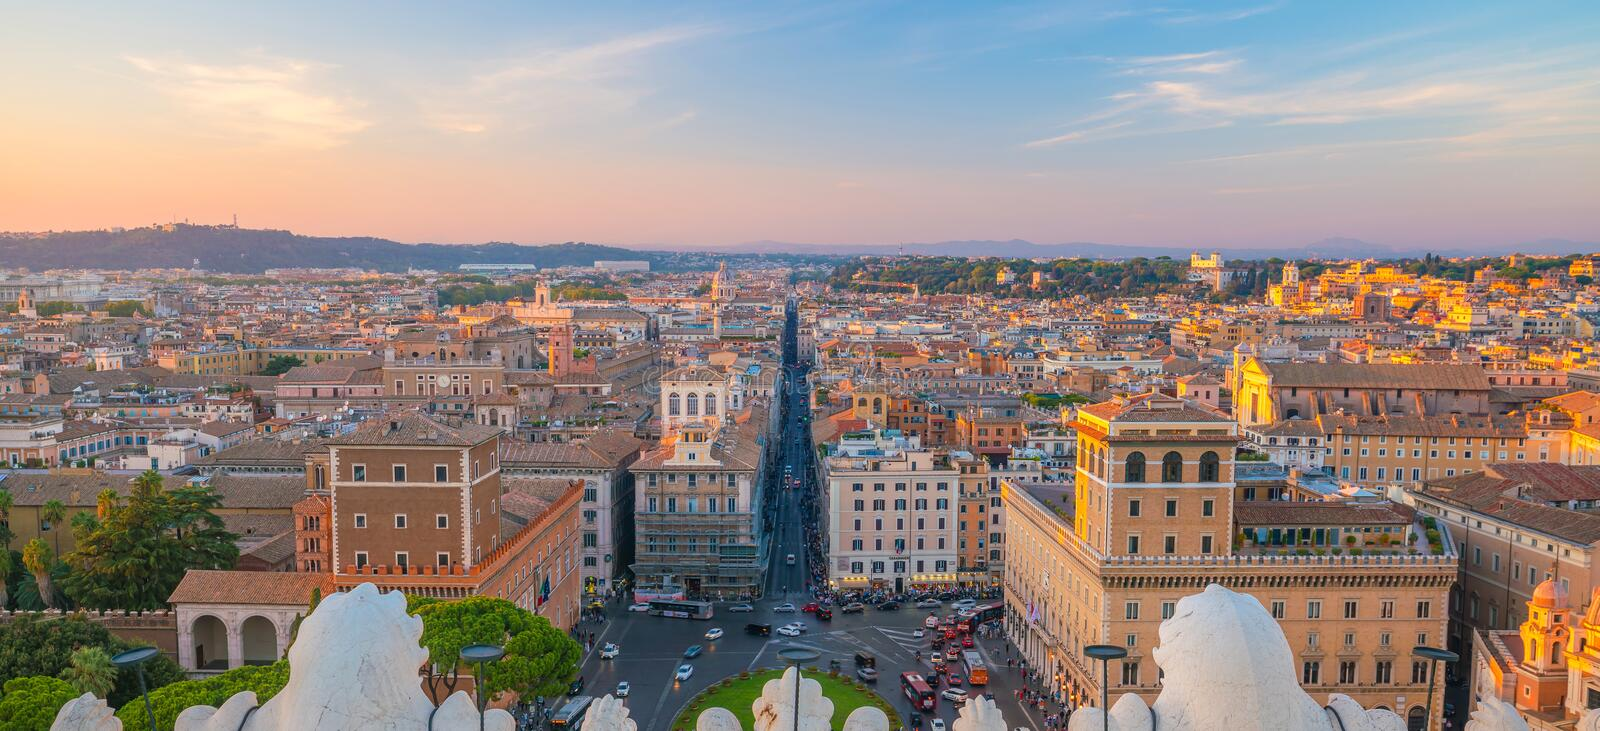 View of old town Rome skyline in Italy. At sunset royalty free stock photography